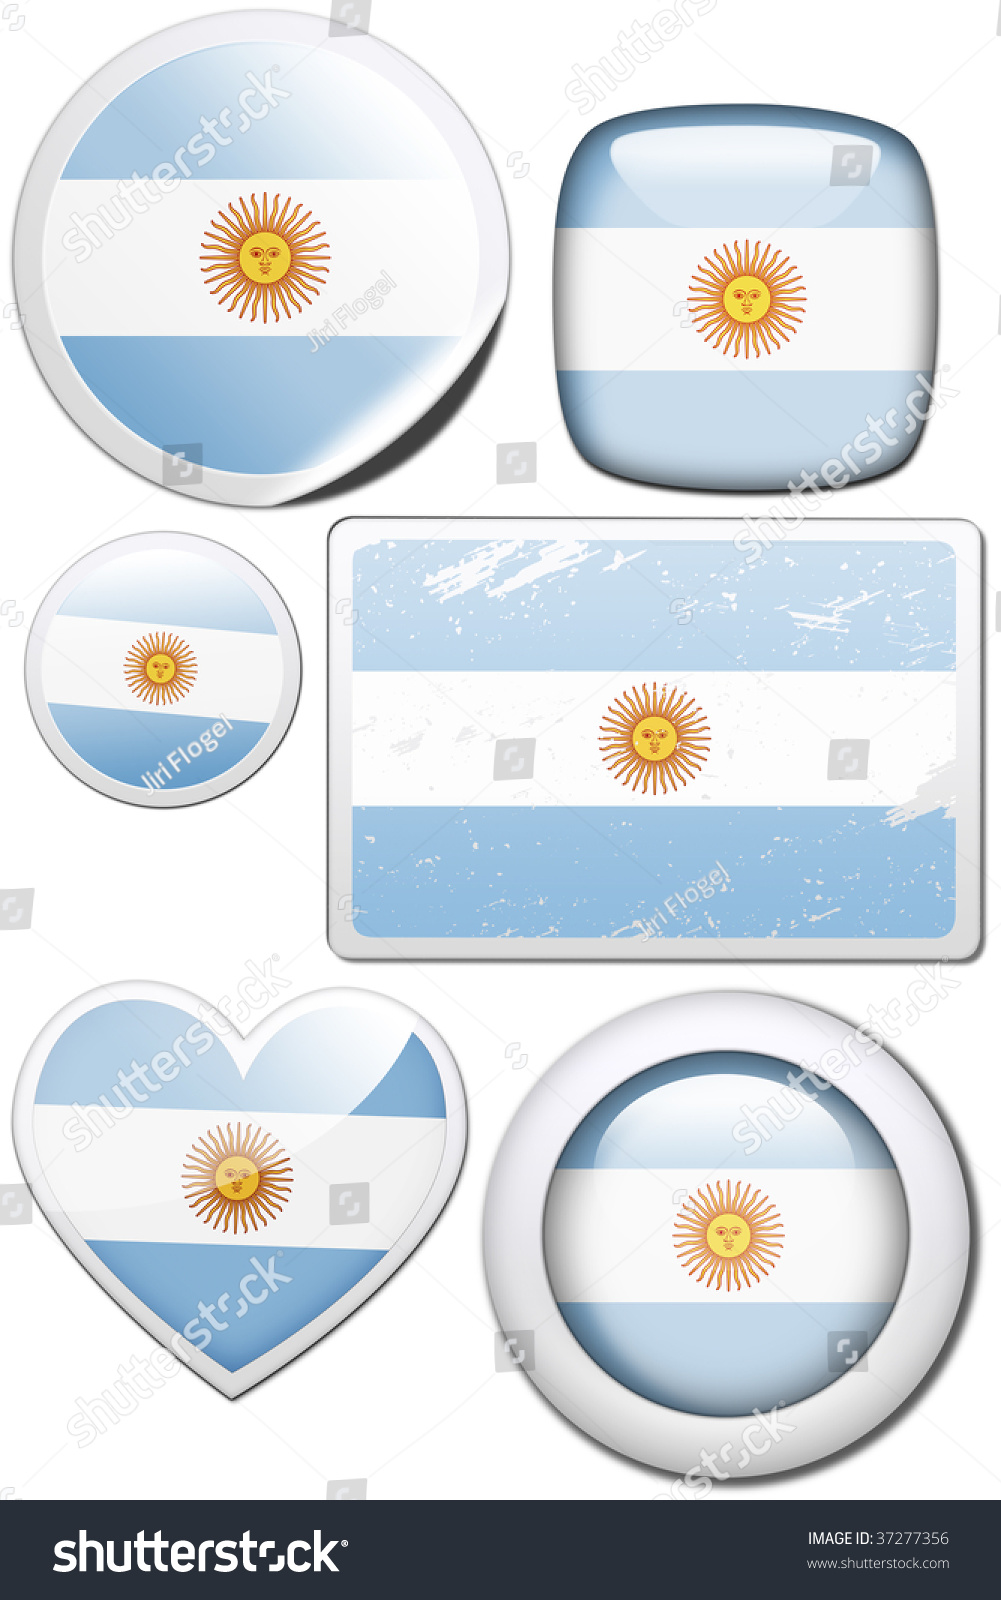 Set of stickers and buttons argentina